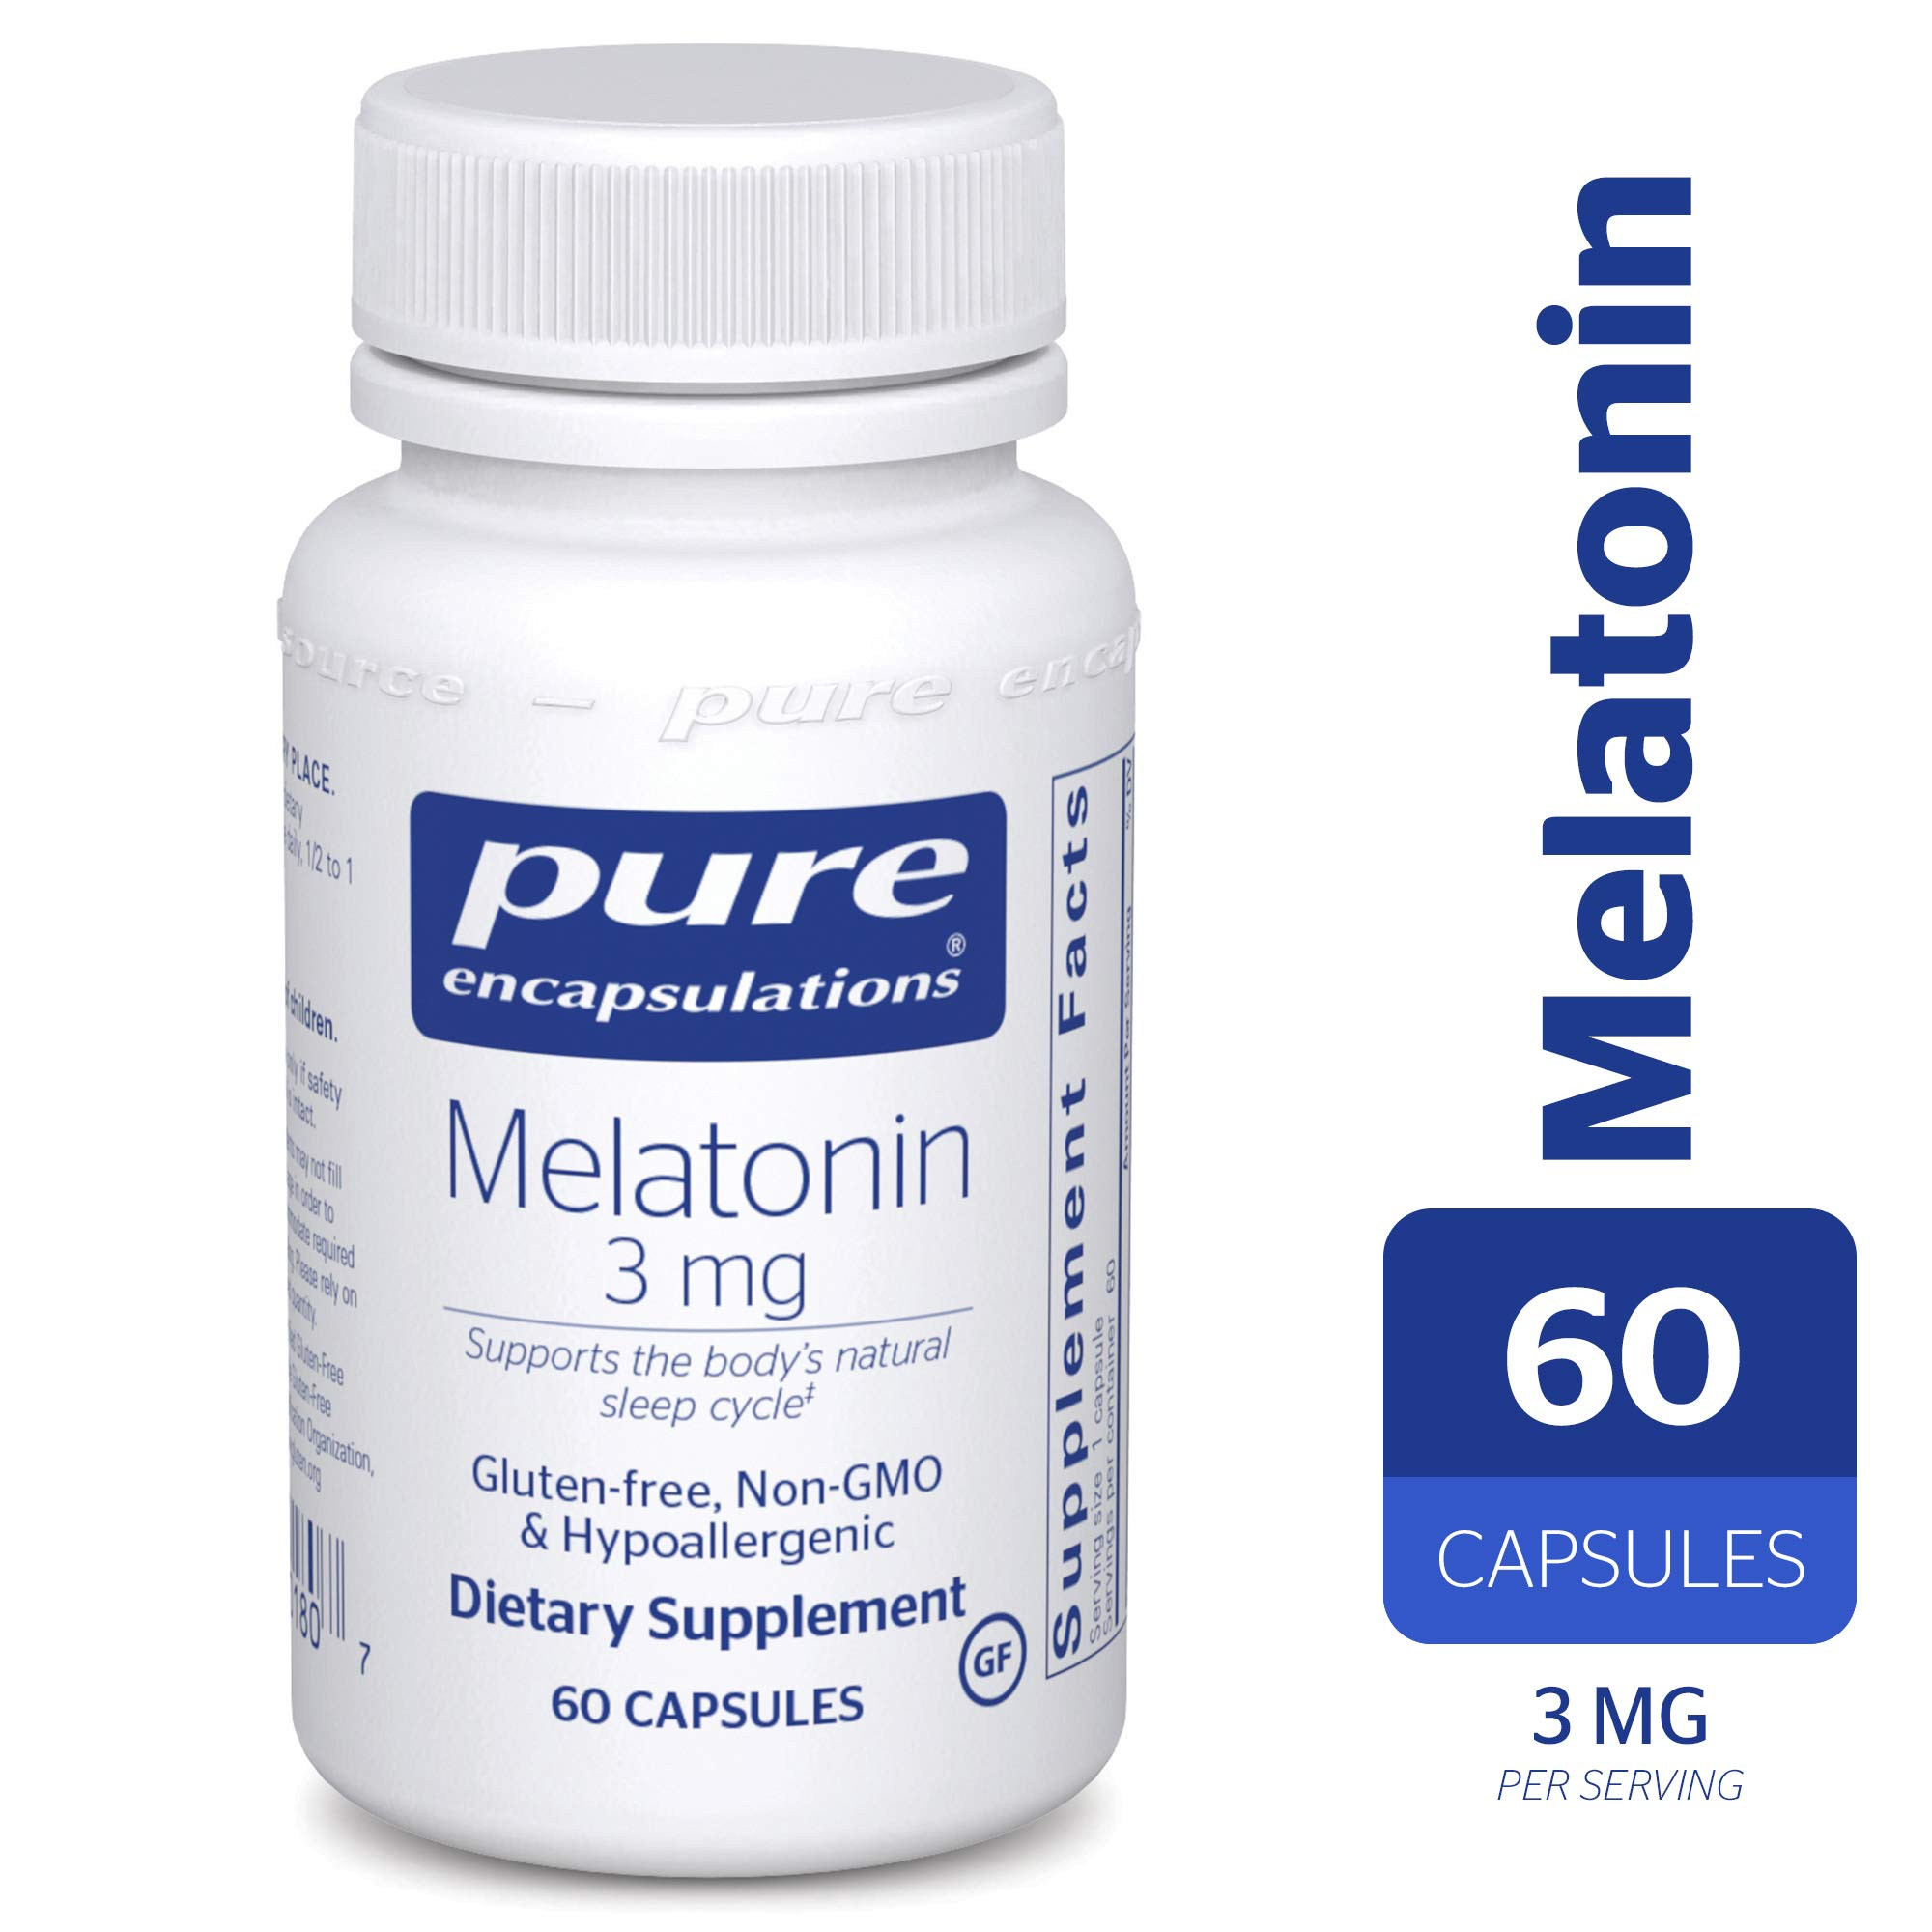 Pure Encapsulations - Melatonin 3 mg - Hypoallergenic Supplement Supports The Bodys Natural Sleep Cycle*